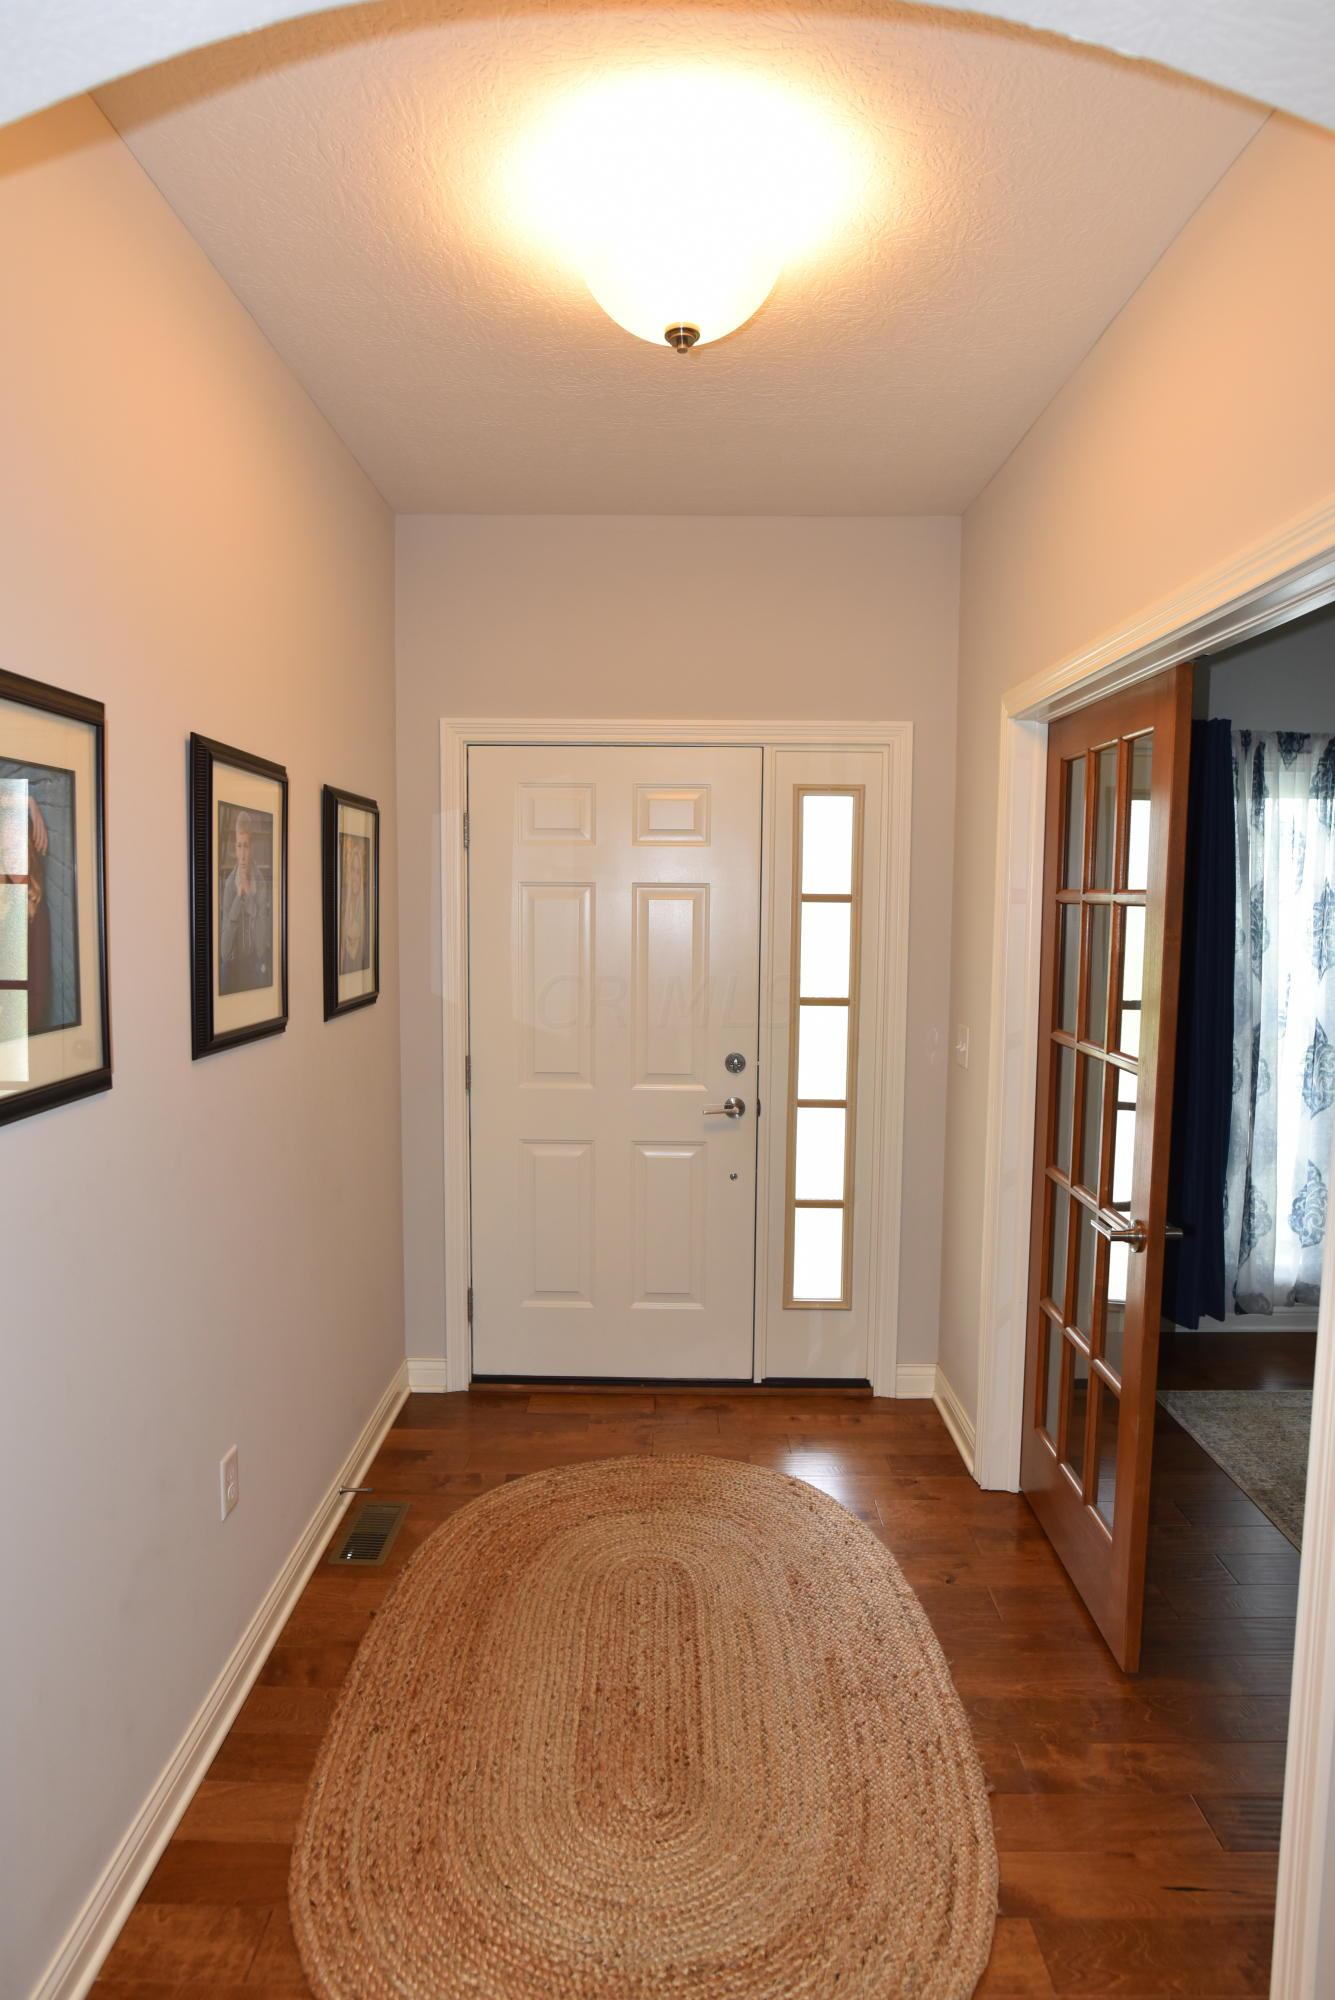 5634 Catmint Drive, Dublin, Ohio 43016, 3 Bedrooms Bedrooms, ,4 BathroomsBathrooms,Residential,For Sale,Catmint,220017754